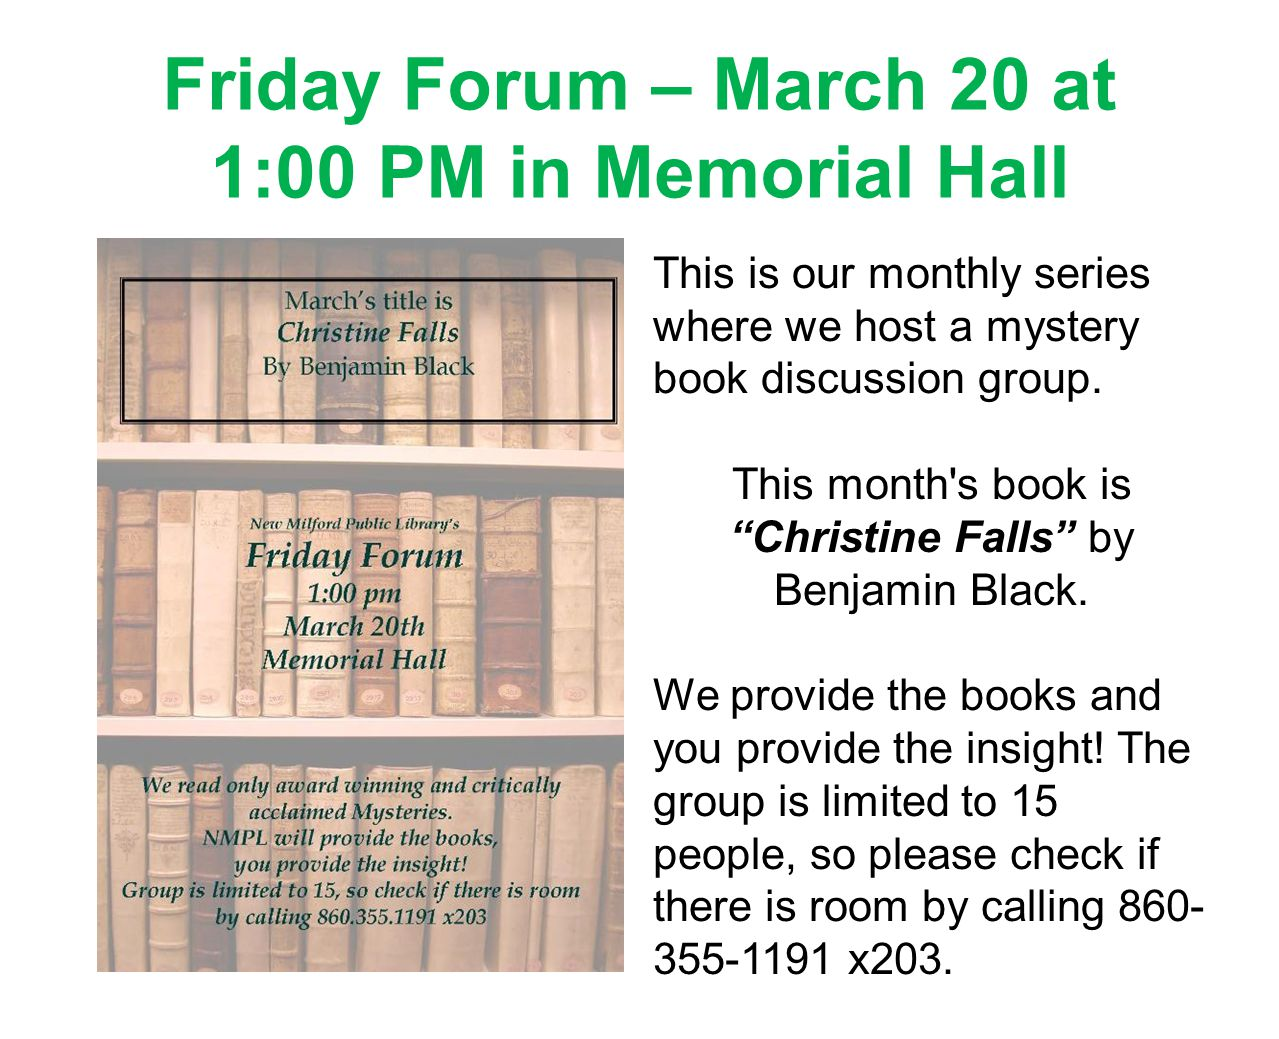 Friday Forum – March 20 at 1:00 PM in Memorial Hall This is our monthly series where we host a mystery book discussion group.